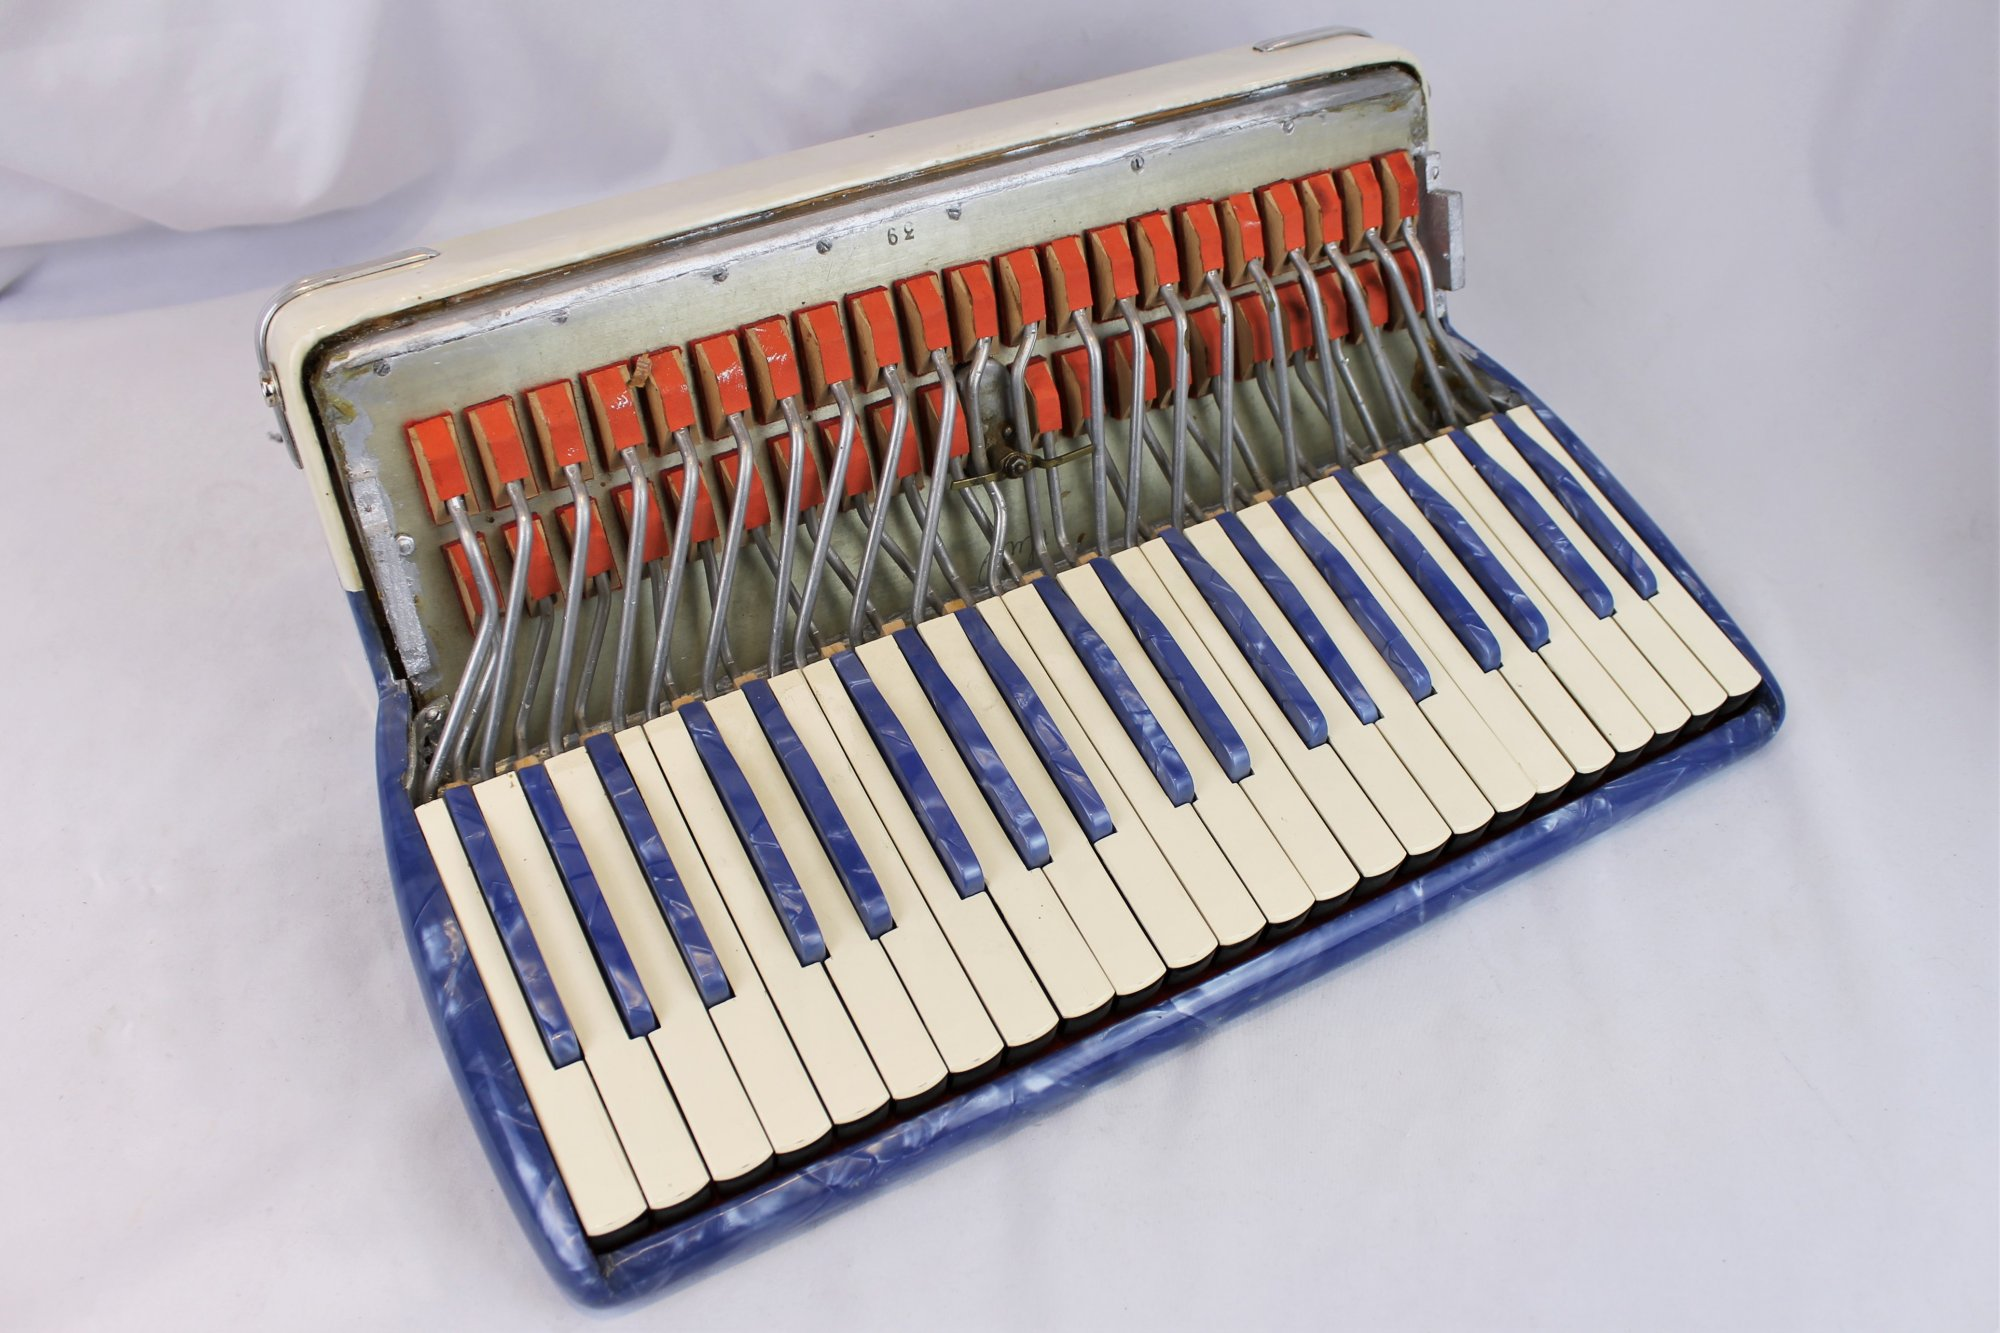 Italian Accordion Part - White and Blue Treble Section 17 x 9 x 6.5